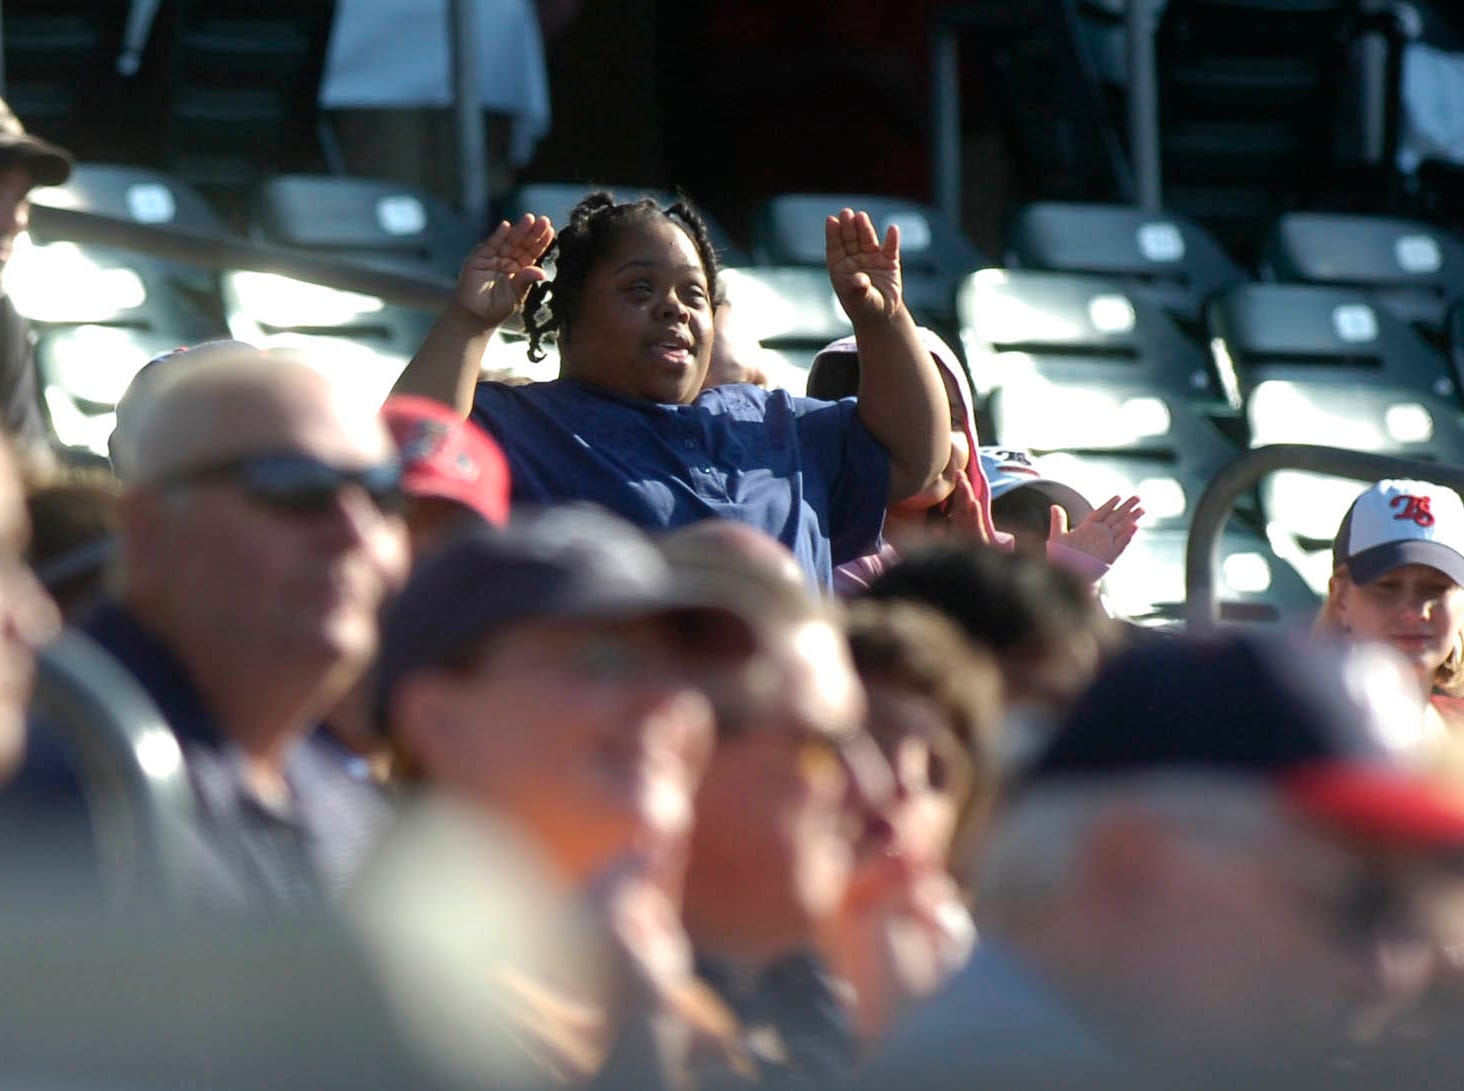 Jasmine Jackson participates in the chicken dance as her brother, Tennessee Smokies pitcher Jay Jackson, pitches against Huntsville on May 29th, 2009.